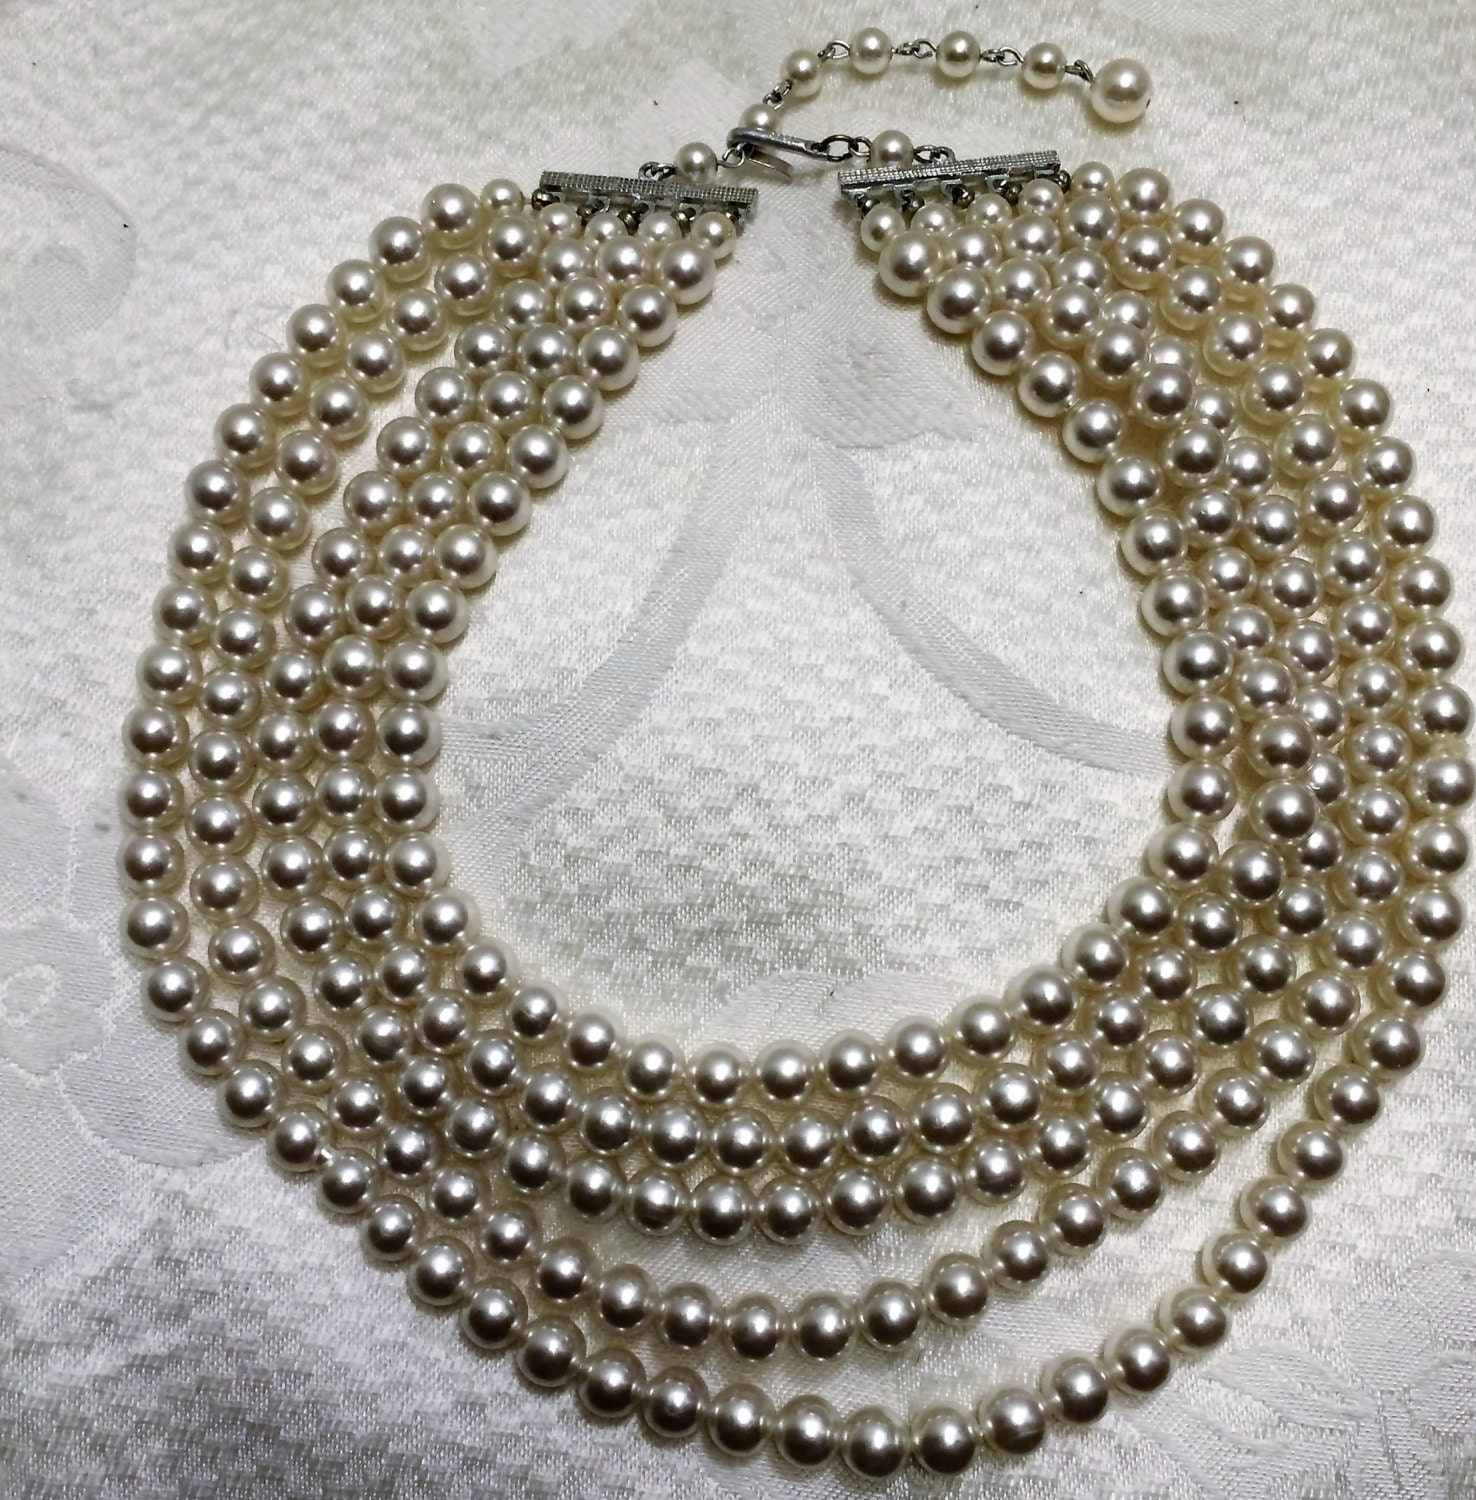 Vintage Pearl Choker Necklace: Vintage Five Strand Faux Pearl 14 To 17 Inch Choker Necklace